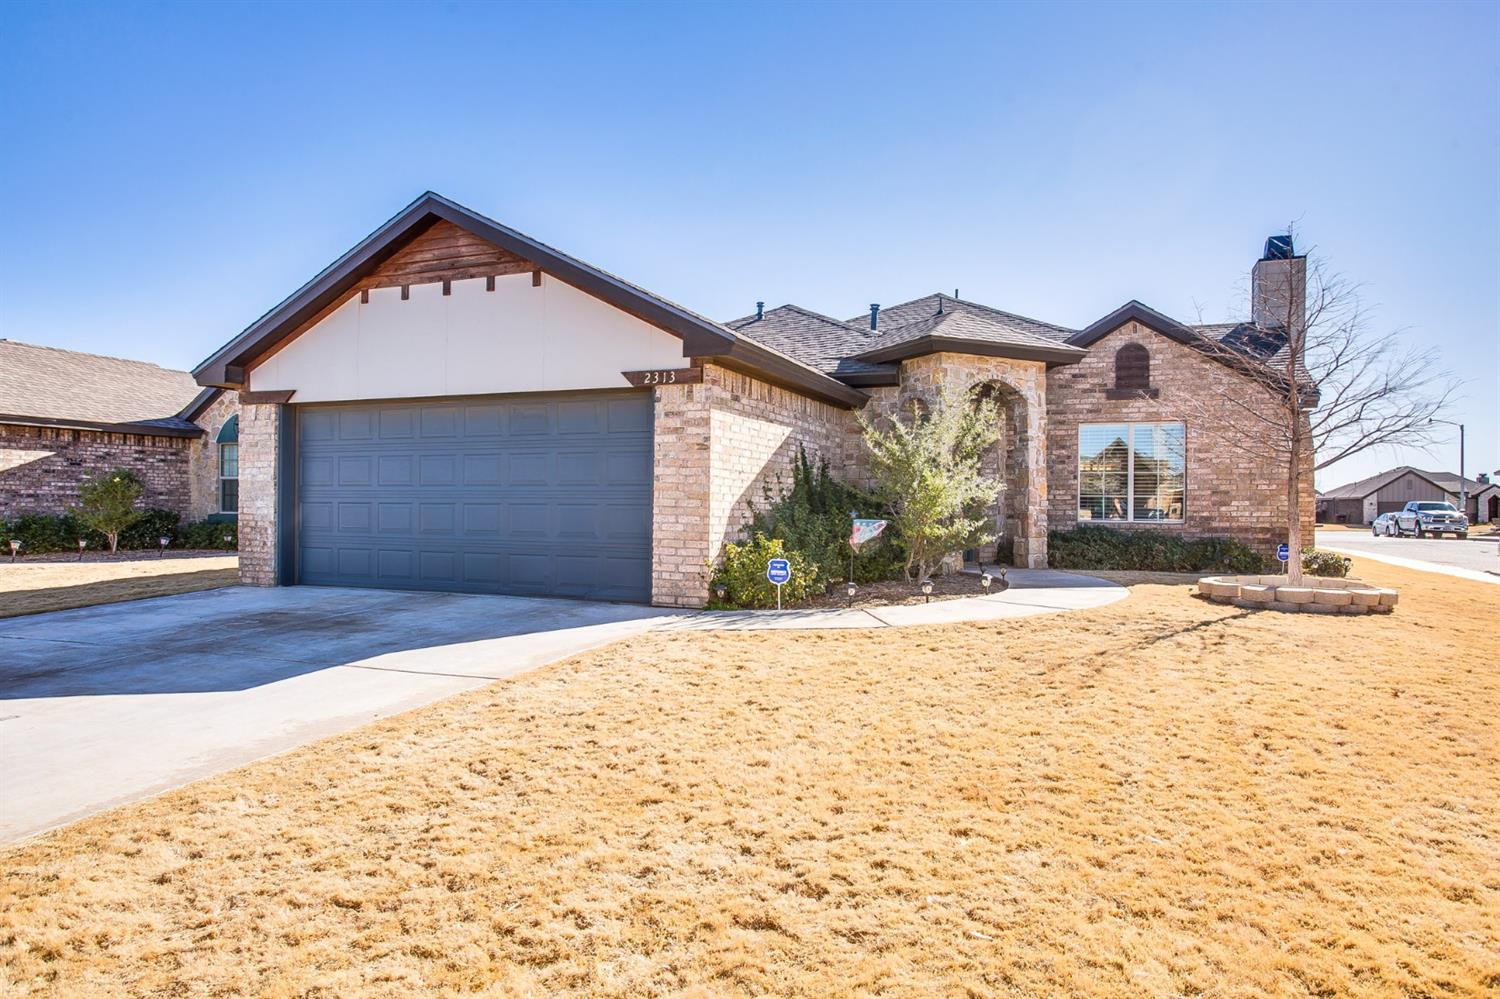 Welcome home to this amazing 4 bed 2 bath home in Foxridge. This home features vaulted ceilings, custom built ins, granite countertops, vinyl plank flooring, spacious living area, great corner lot with bigger front yard and additional parking, and much more! This well maintained home is ready to show today!